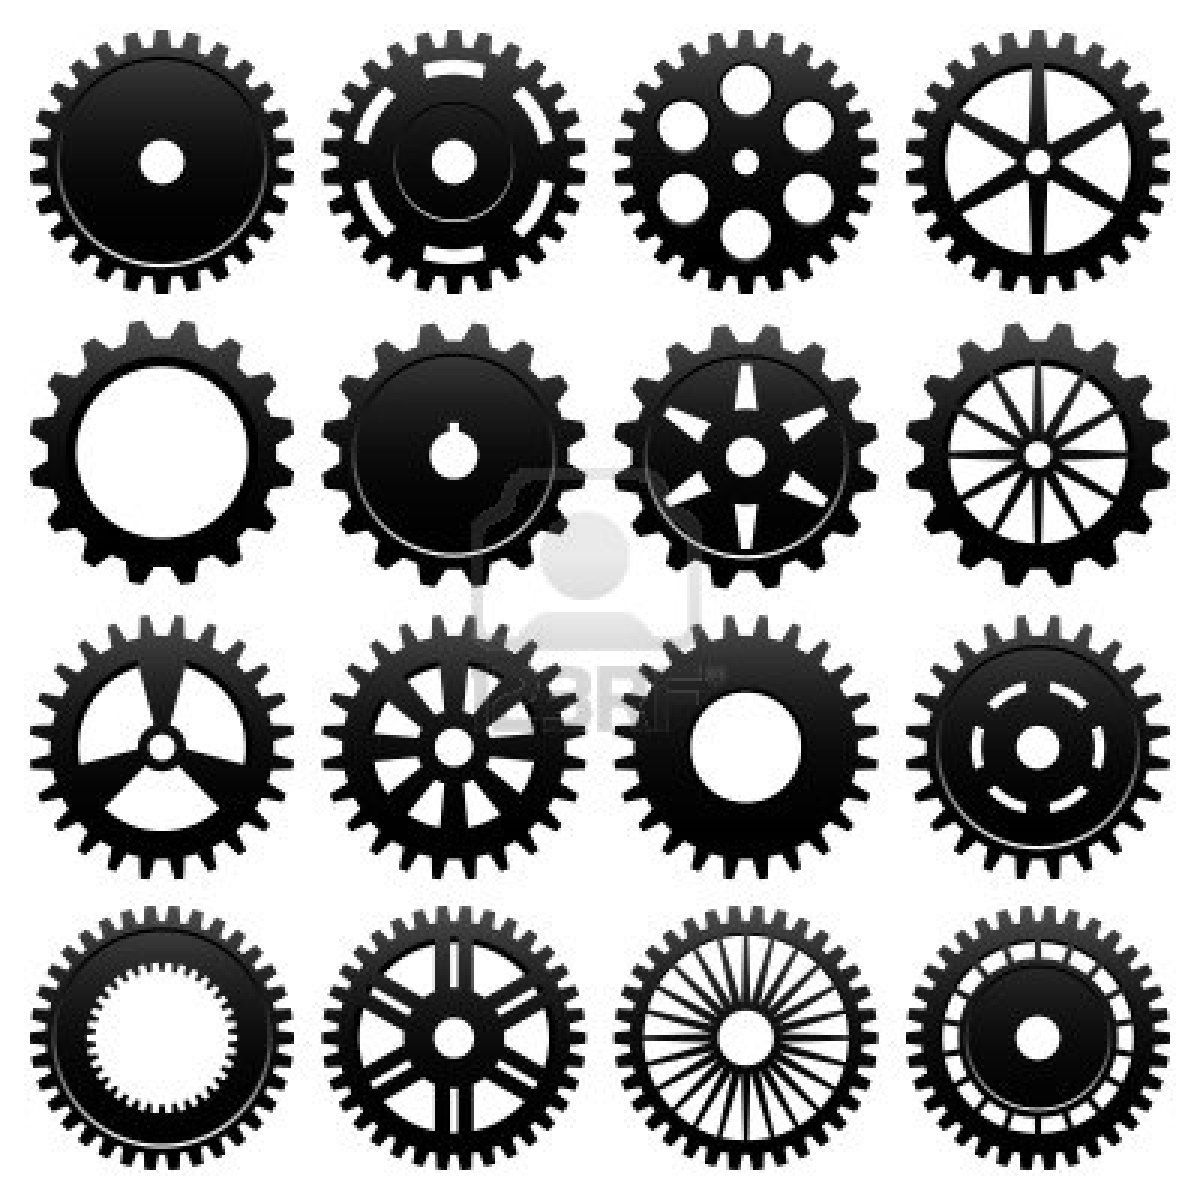 Machine Gear Wheel Cogwheel Vector Royalty Free Cliparts, Vectors ...